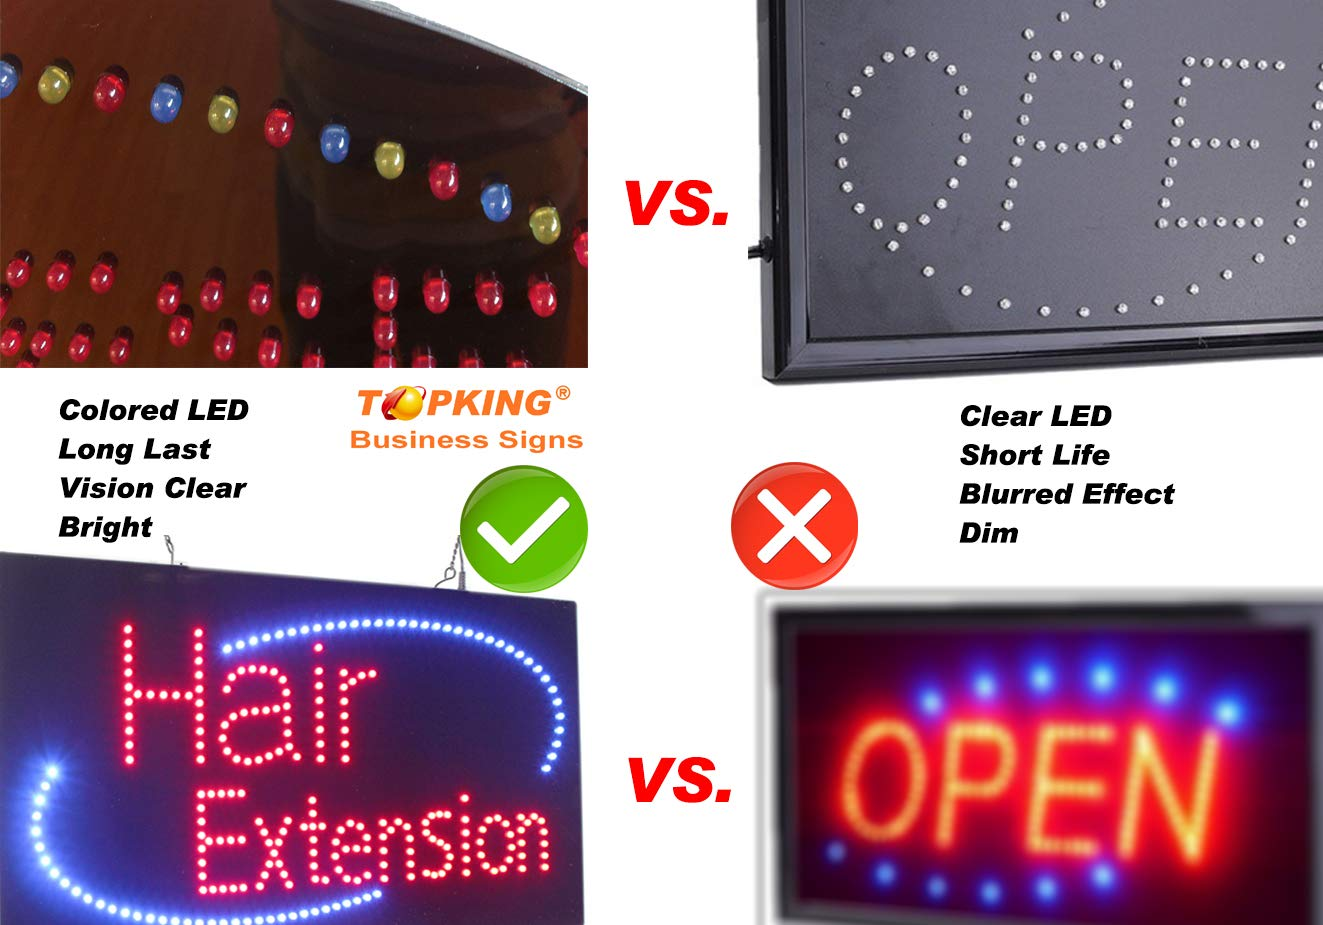 Horizontal Light Up Sign for Business LED Gift Shop Sign for Business Displays 11H x 27W x 1D